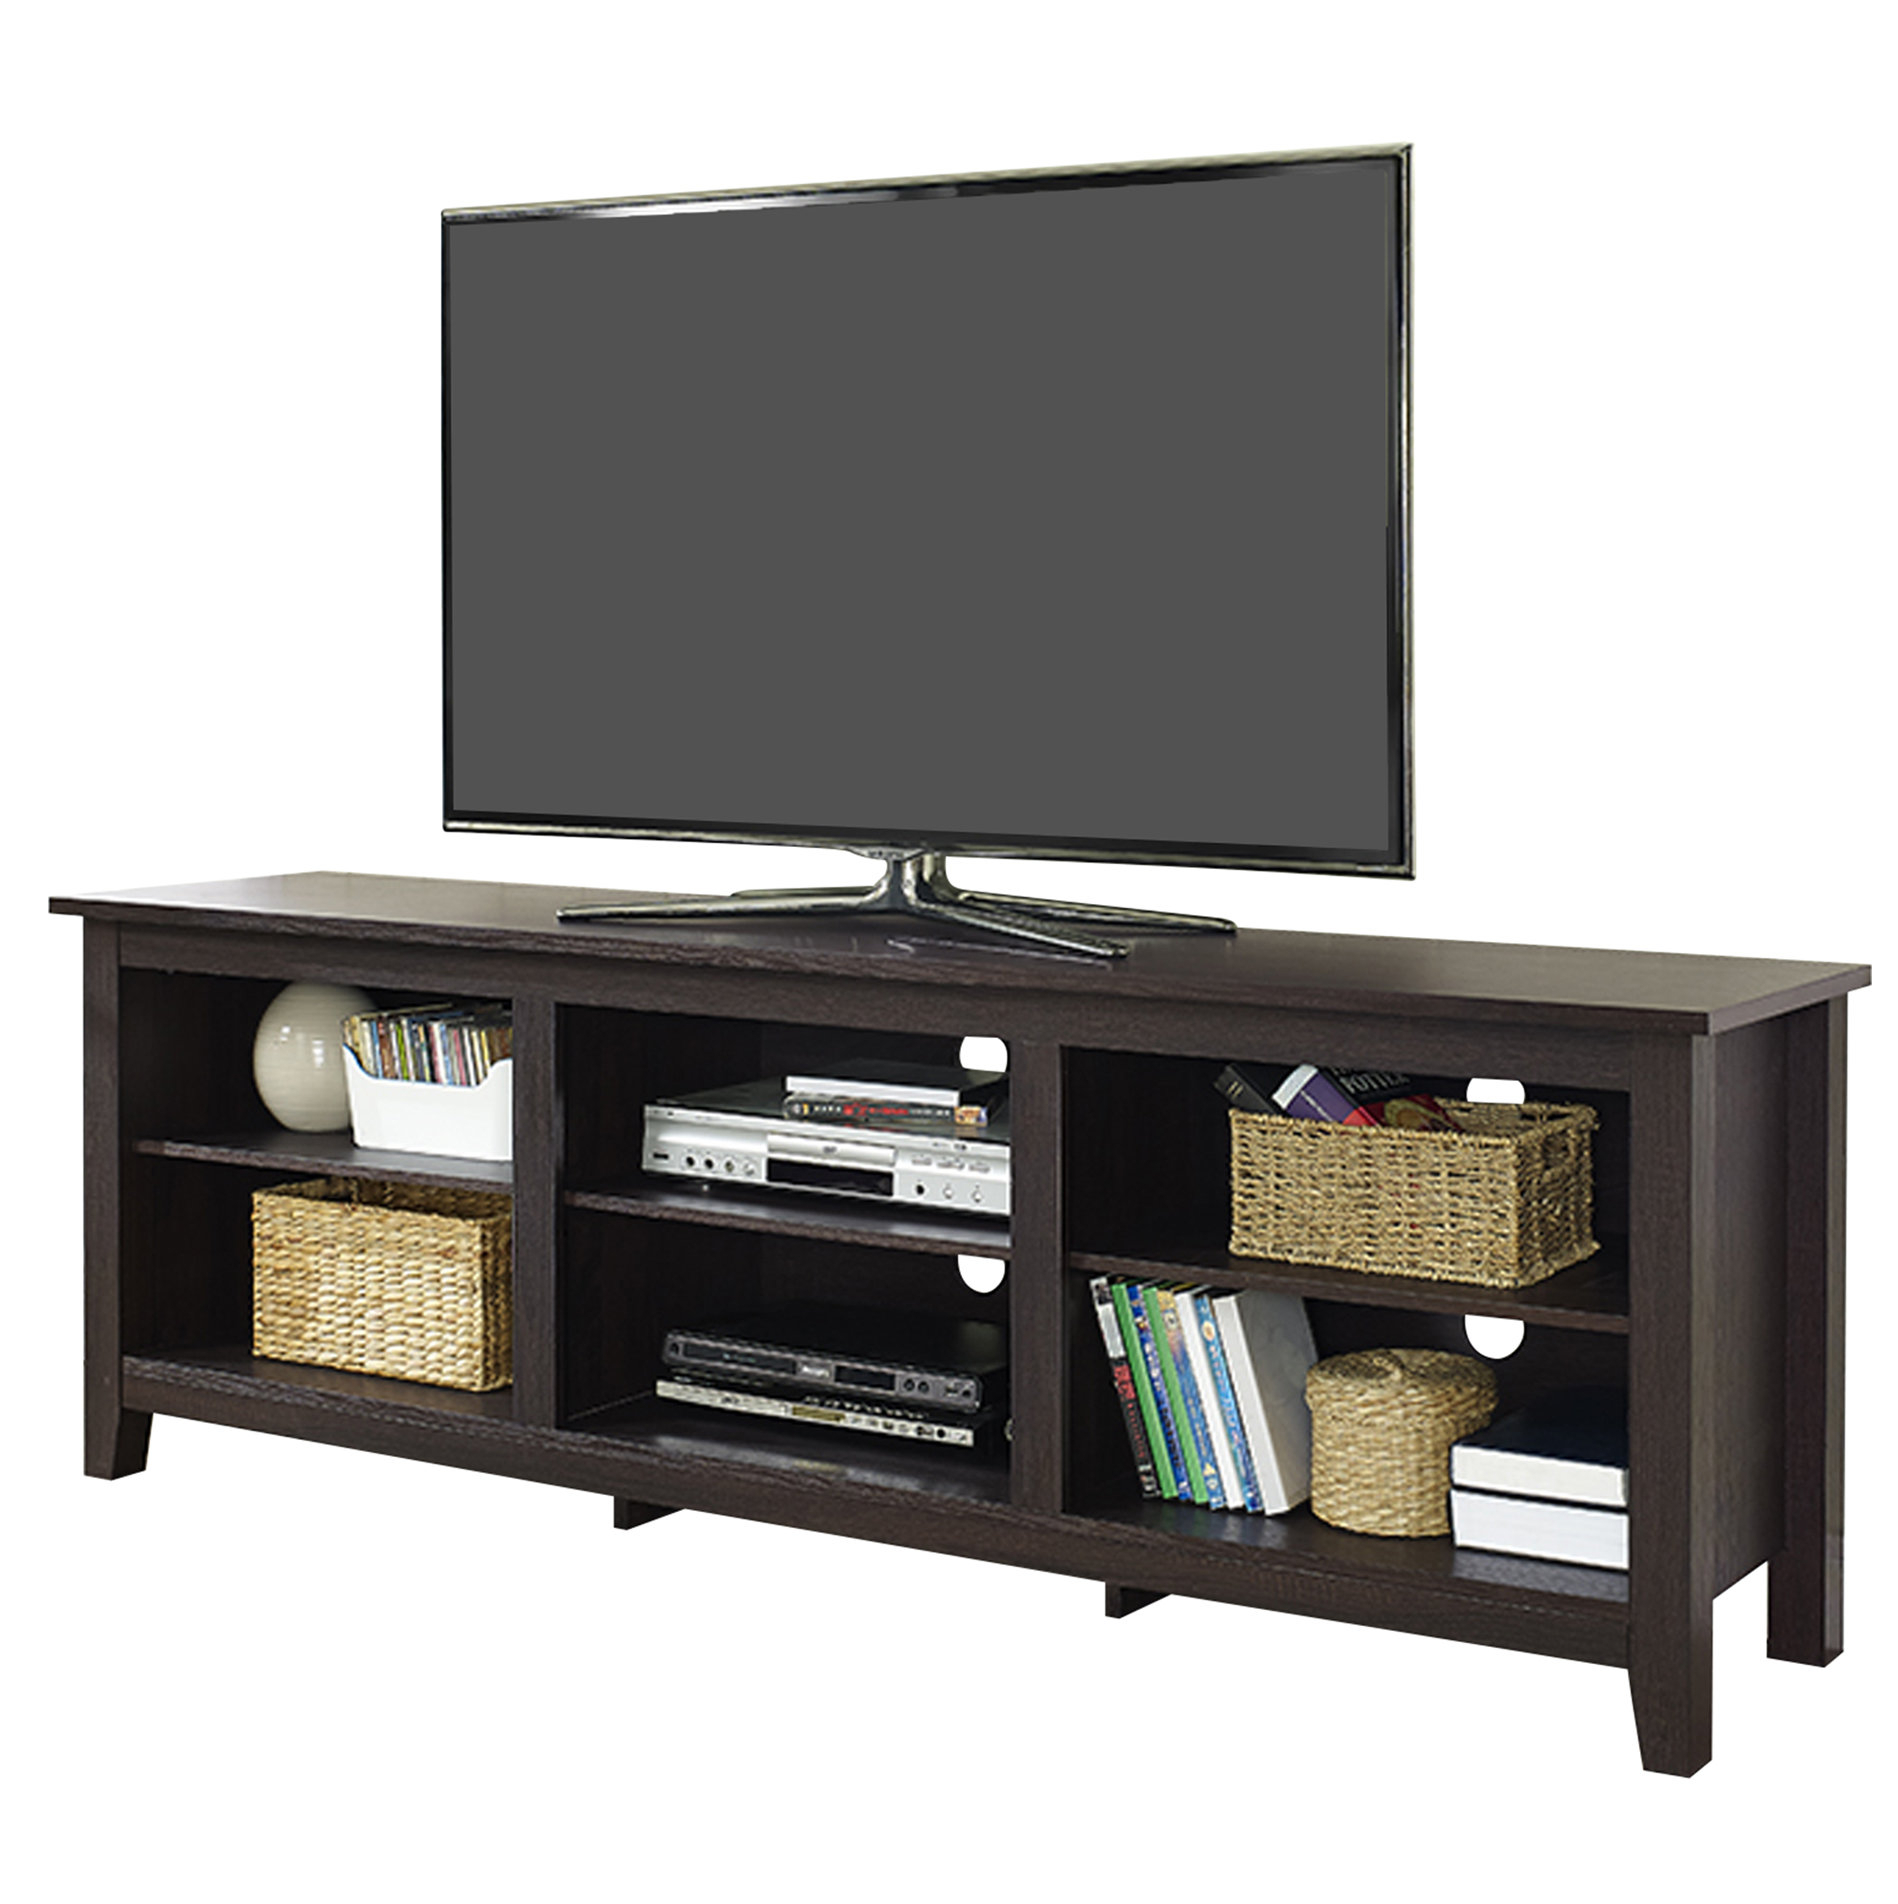 Tv Stands | Joss & Main intended for Annabelle Blue 70 Inch Tv Stands (Image 21 of 30)